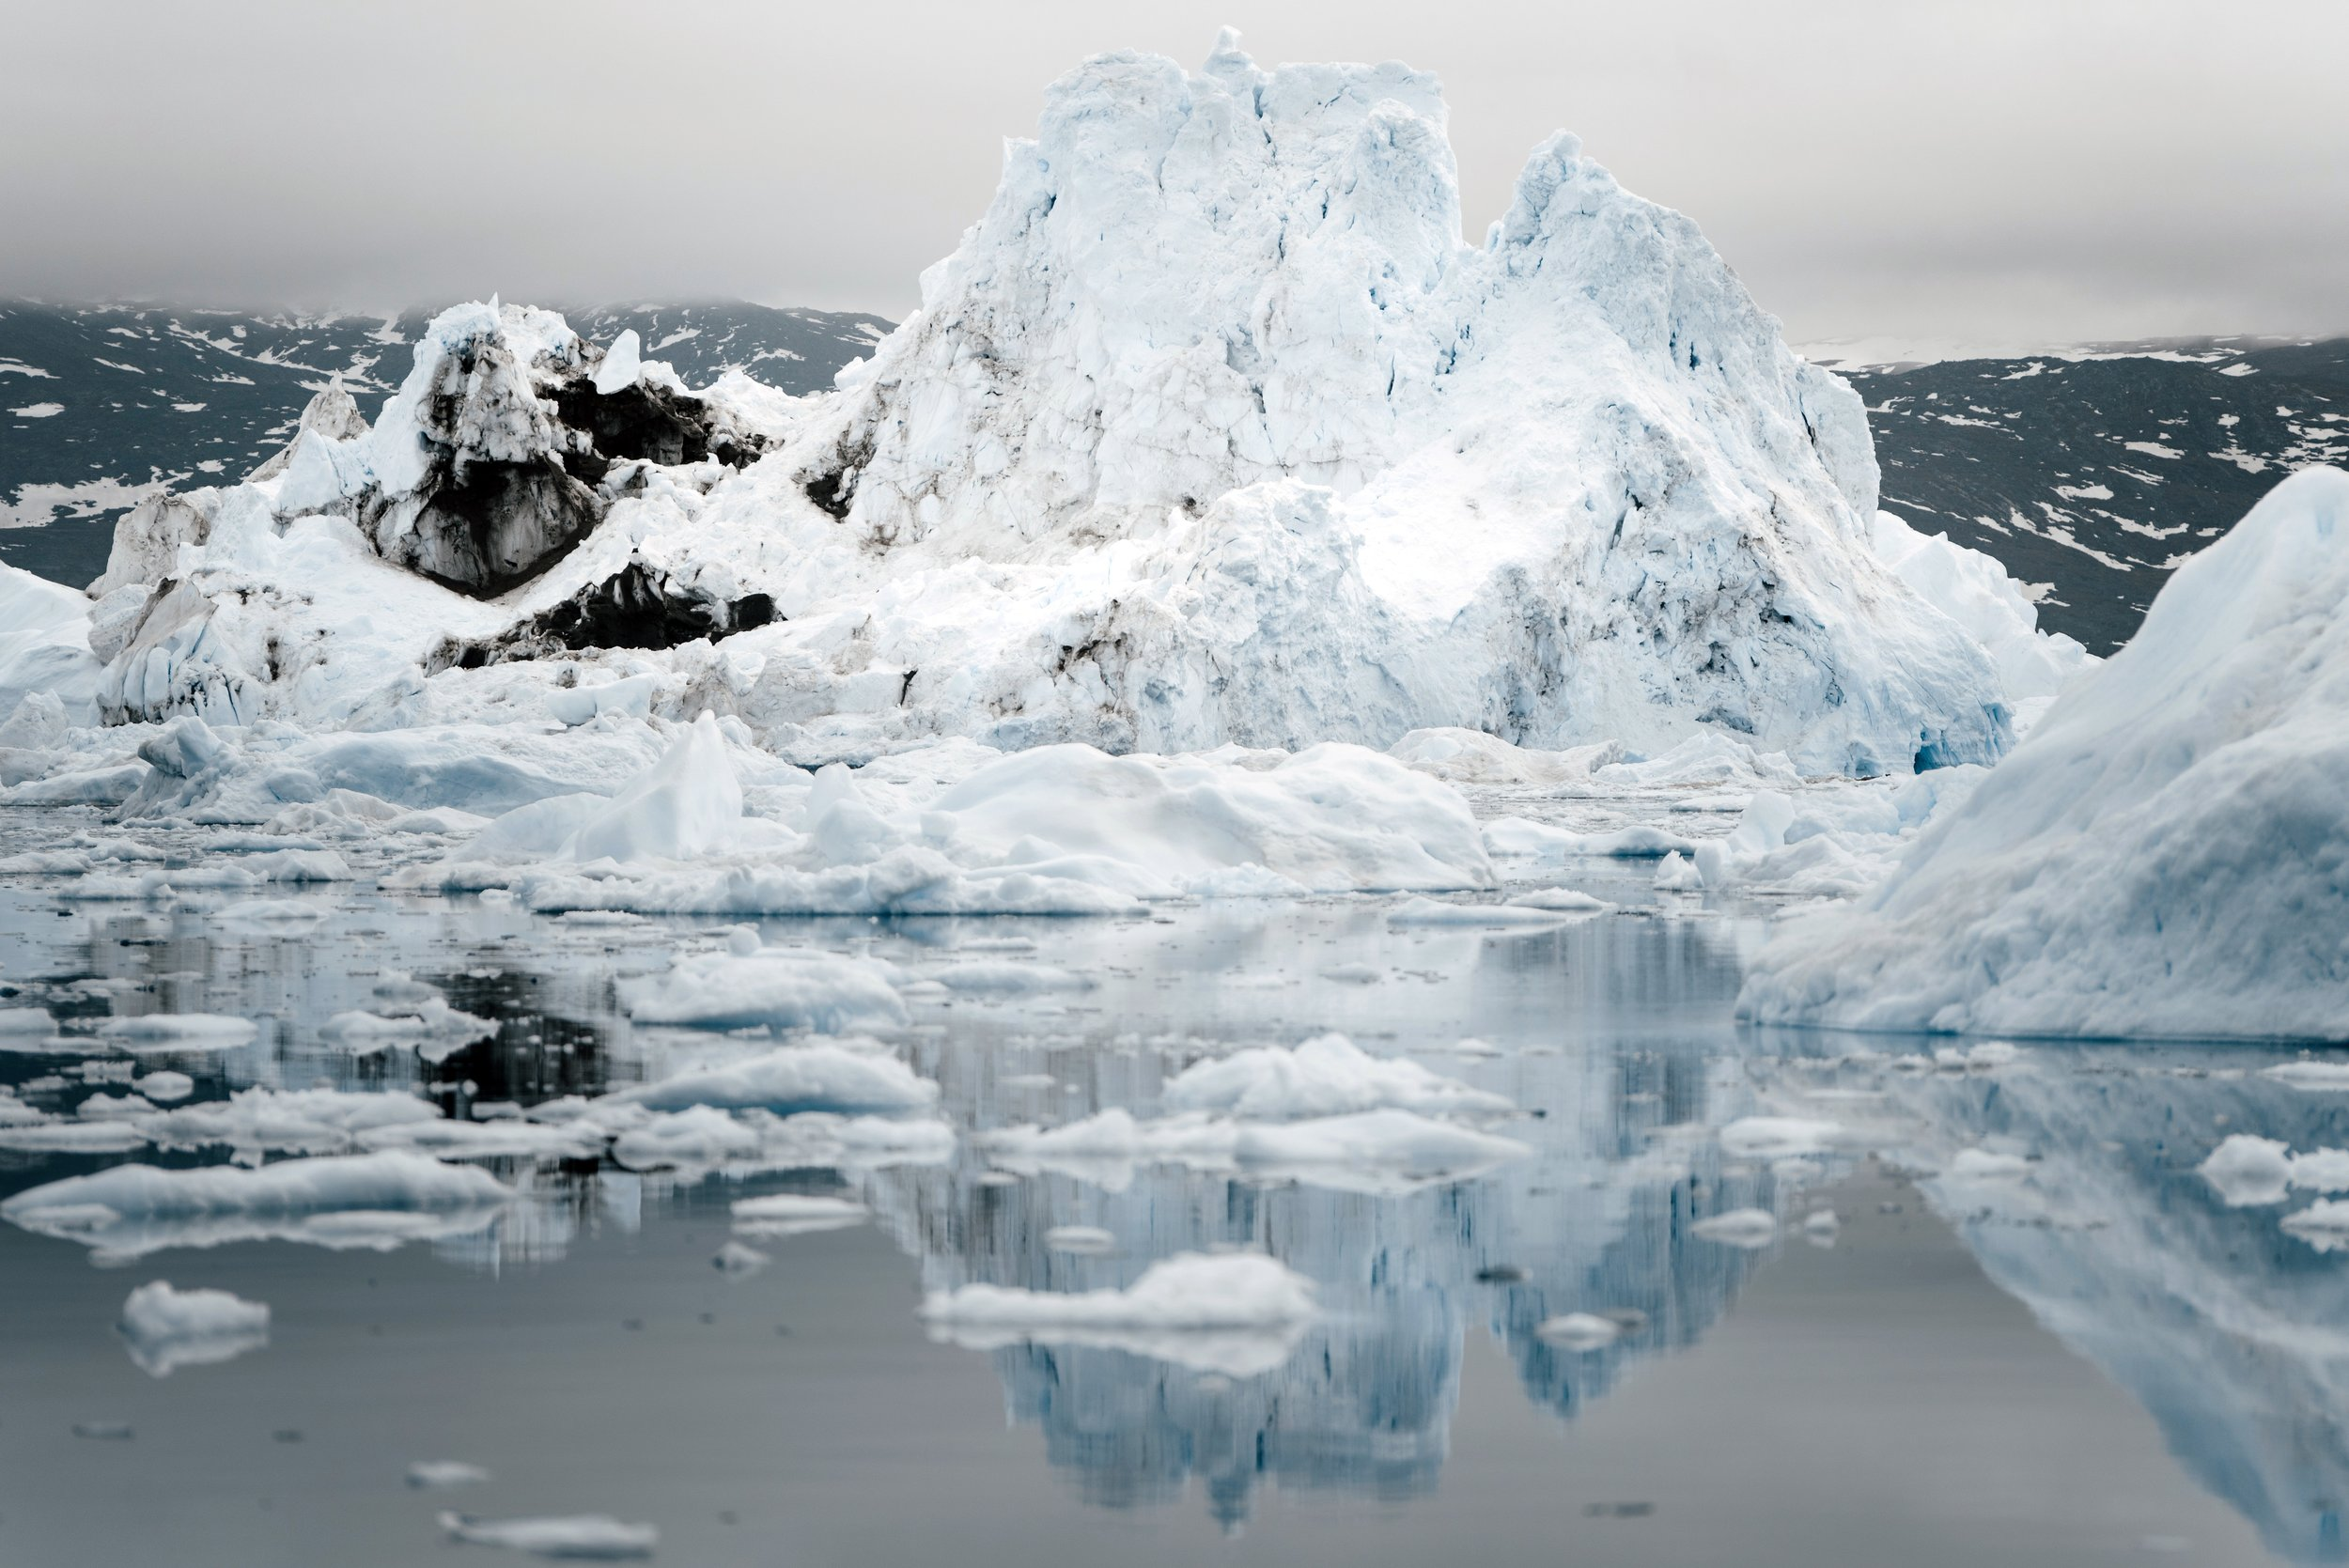 """The world is """"losing the race"""" against climate change - UN chief Antonio Guterres"""